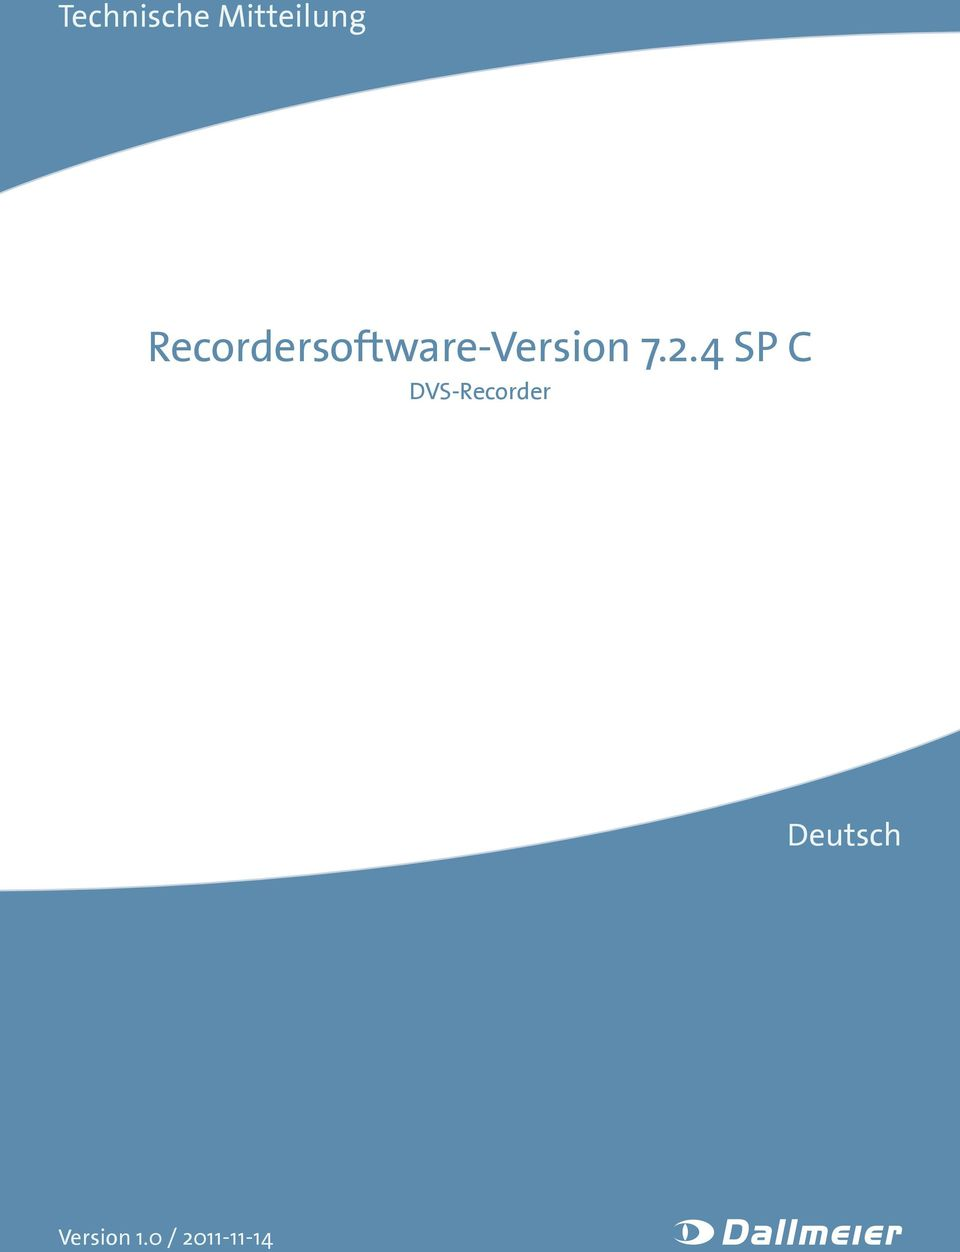 7.2.4 SP C DVS-Recorder